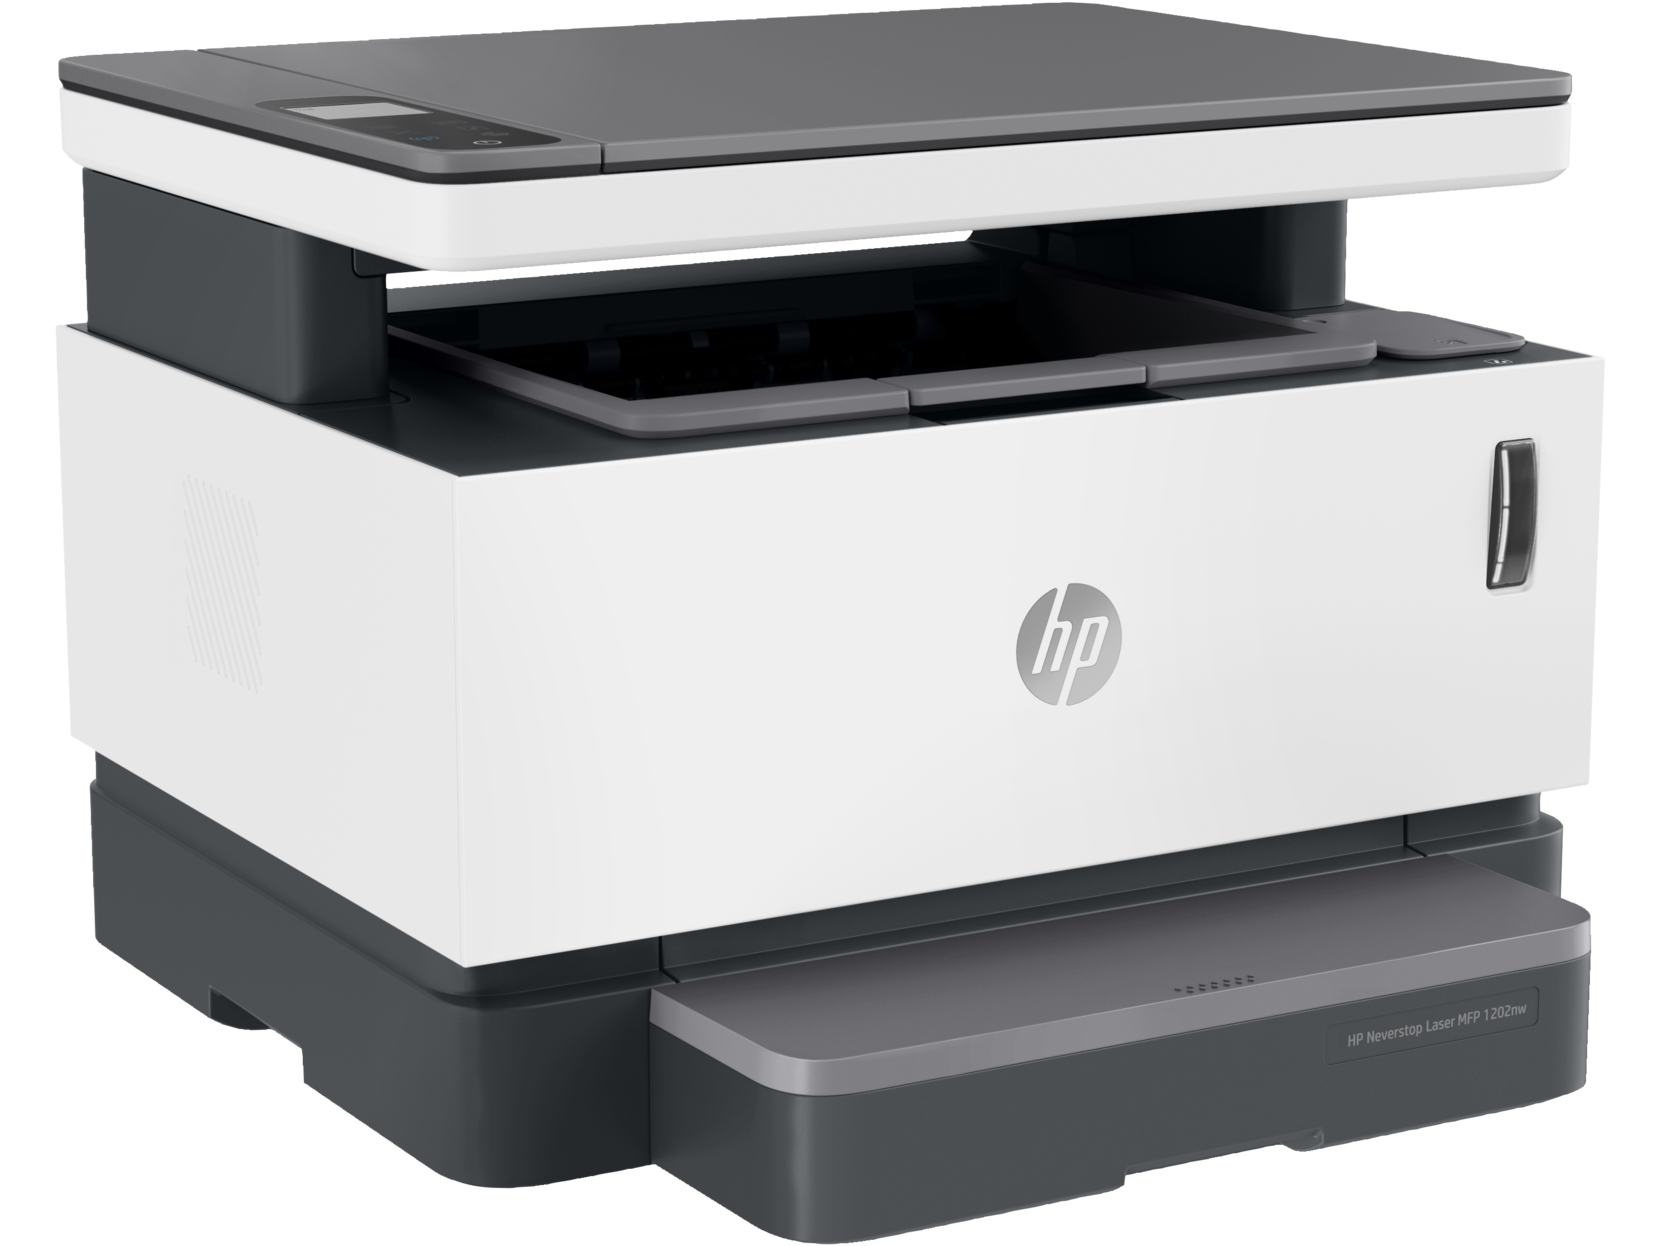 HP Neverstop 1202nw Color Laser MFP, Demo (5HG93A)